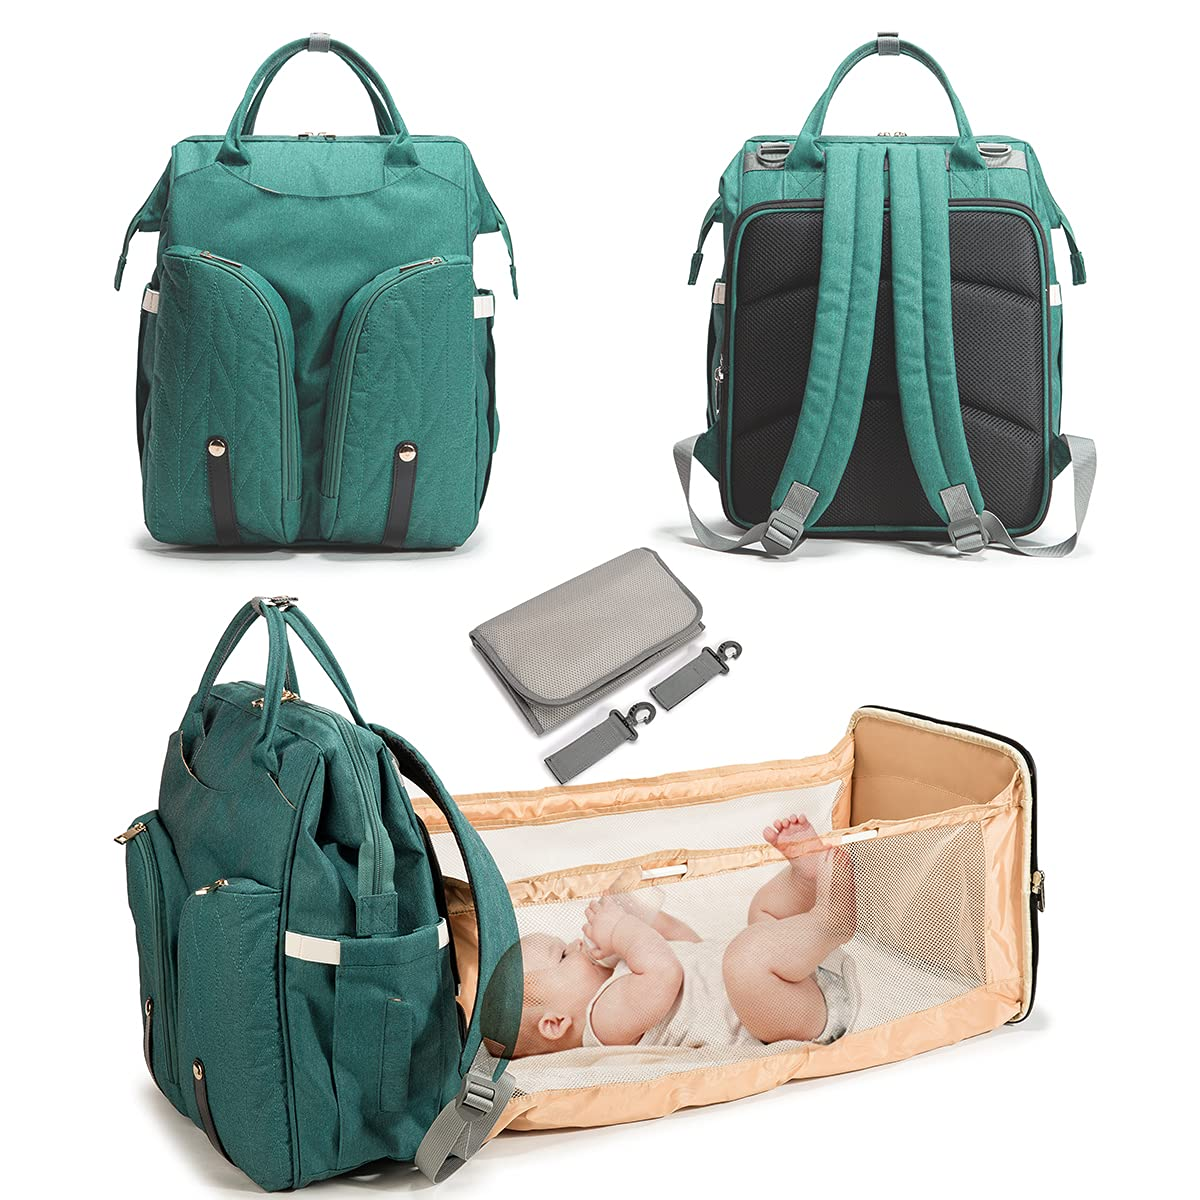 SEMSOIIO Extra Large 3 in 1 Backpack Foldable Diaper Changing Bag, Diaper Bag Backpack with Changing Mat Green